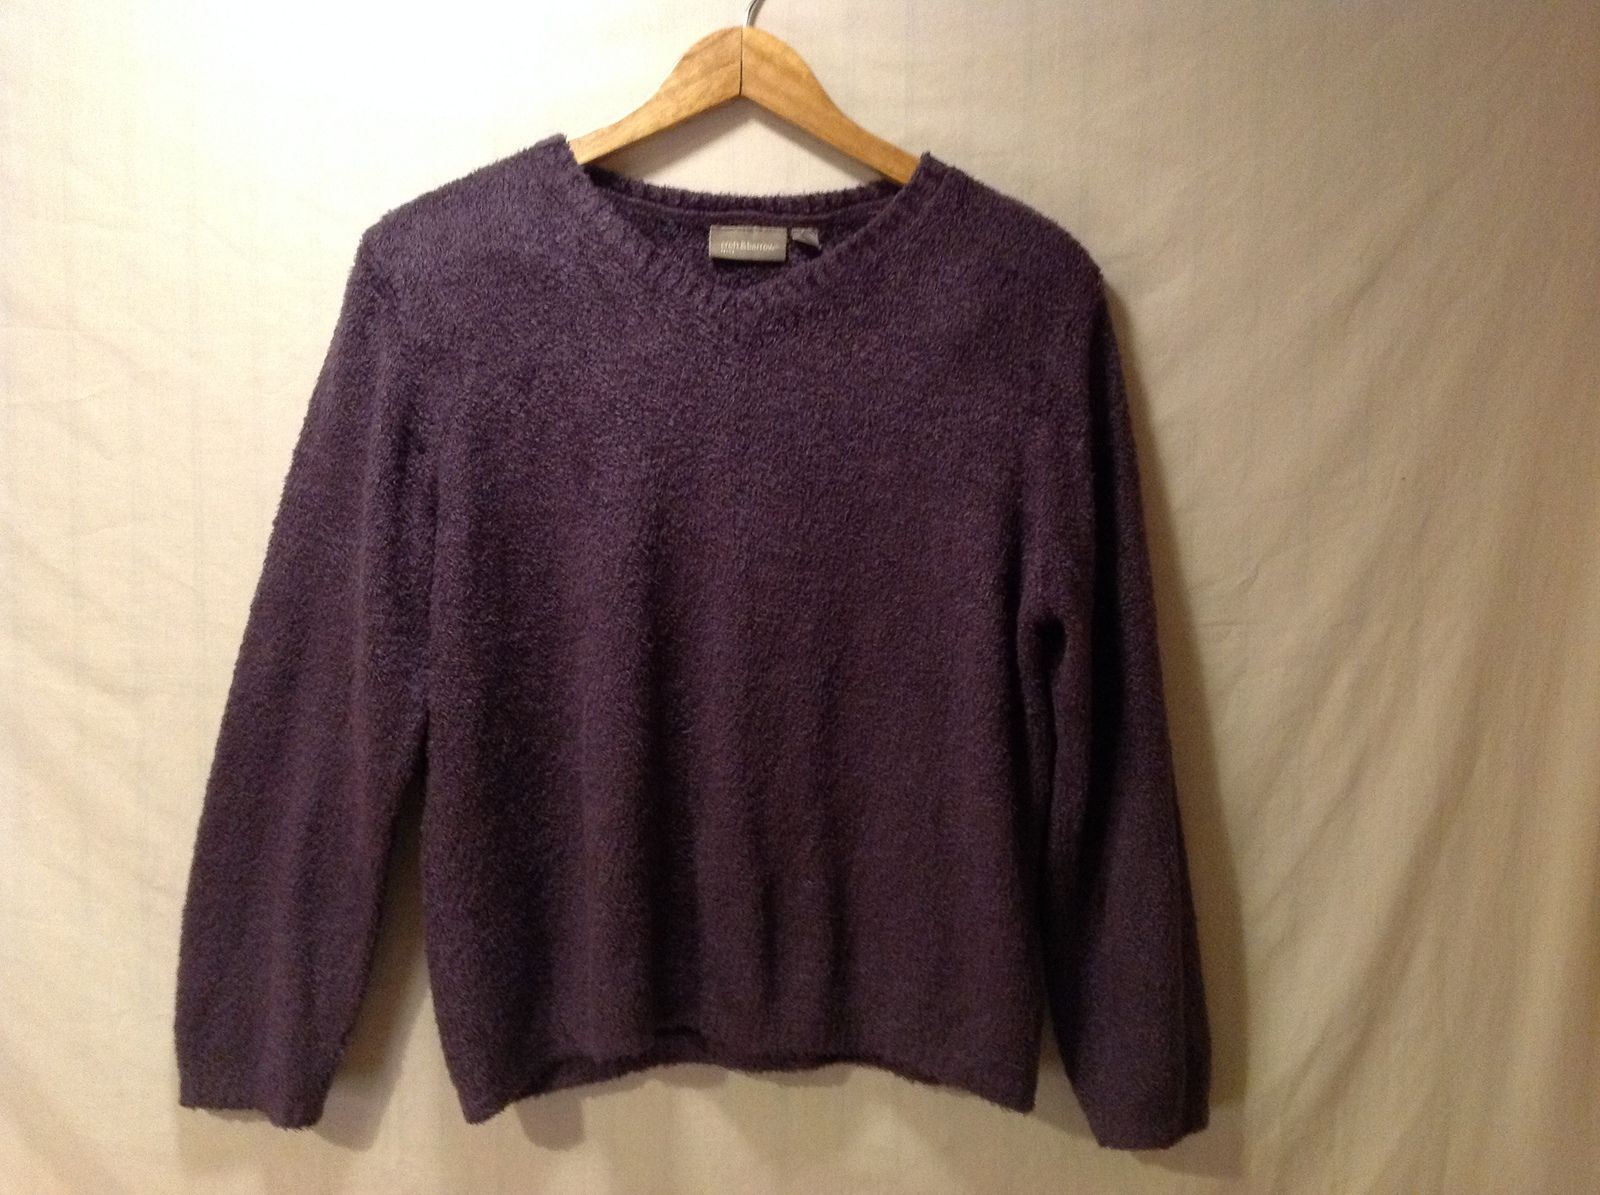 Croft & Barrow Womens Purple Pullover Sweater  Size Petite Large